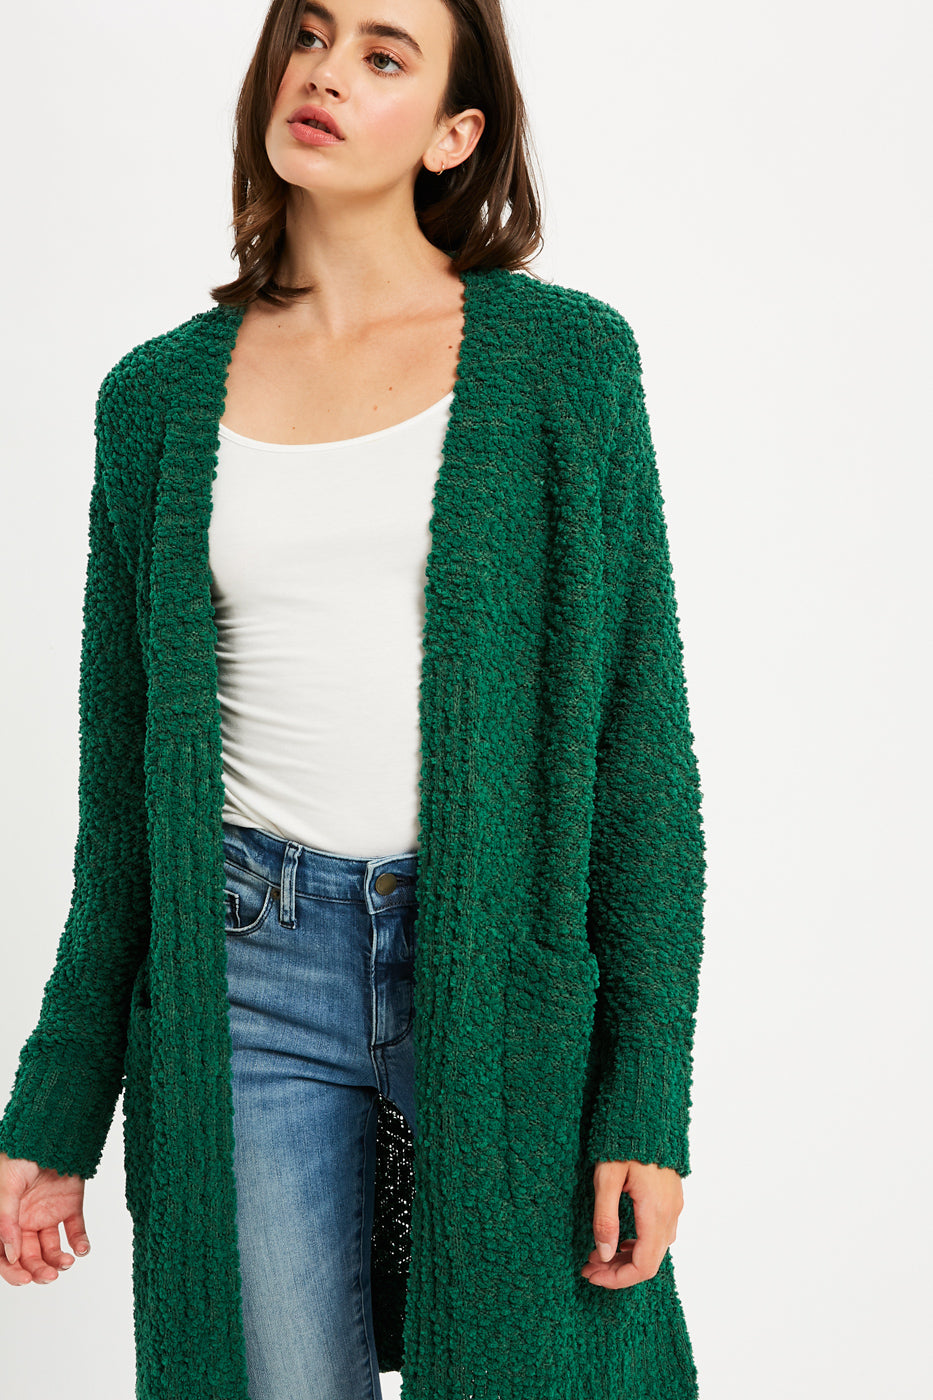 Boucle Comfy Open Front Cardigan - Dark Green